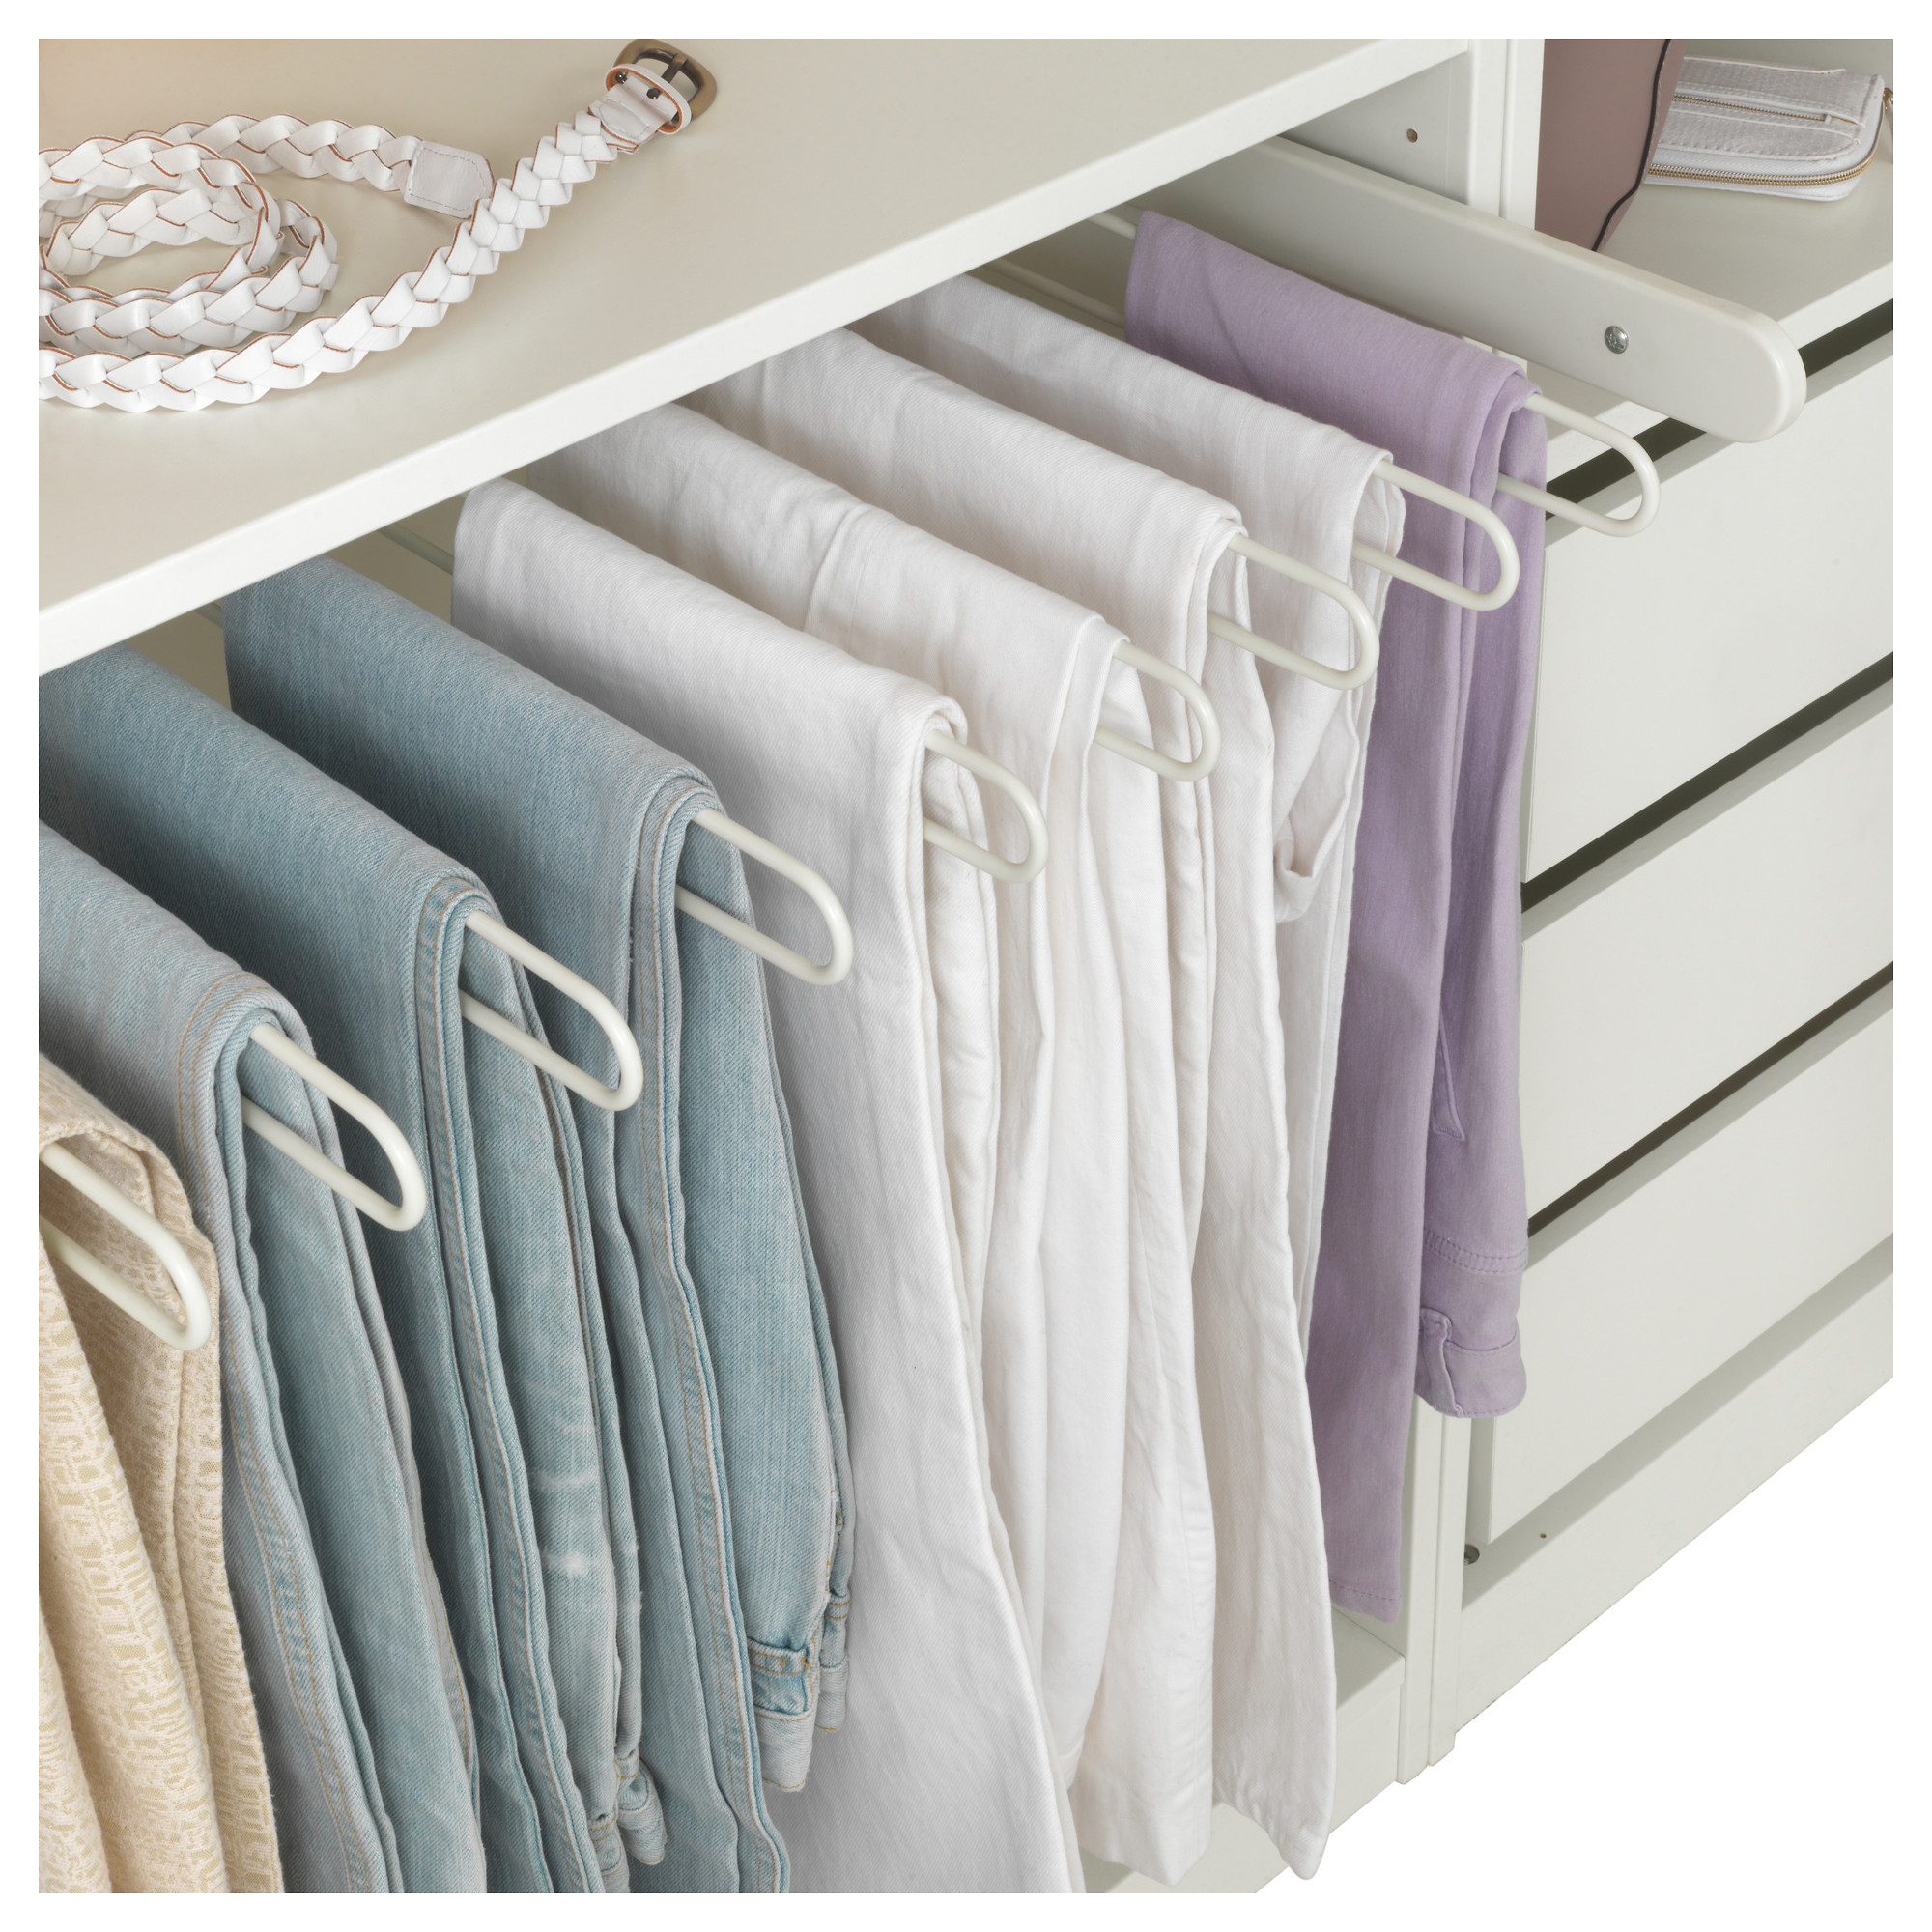 IKEA  KOMPLEMENT Pullout pants hanger white in 2019